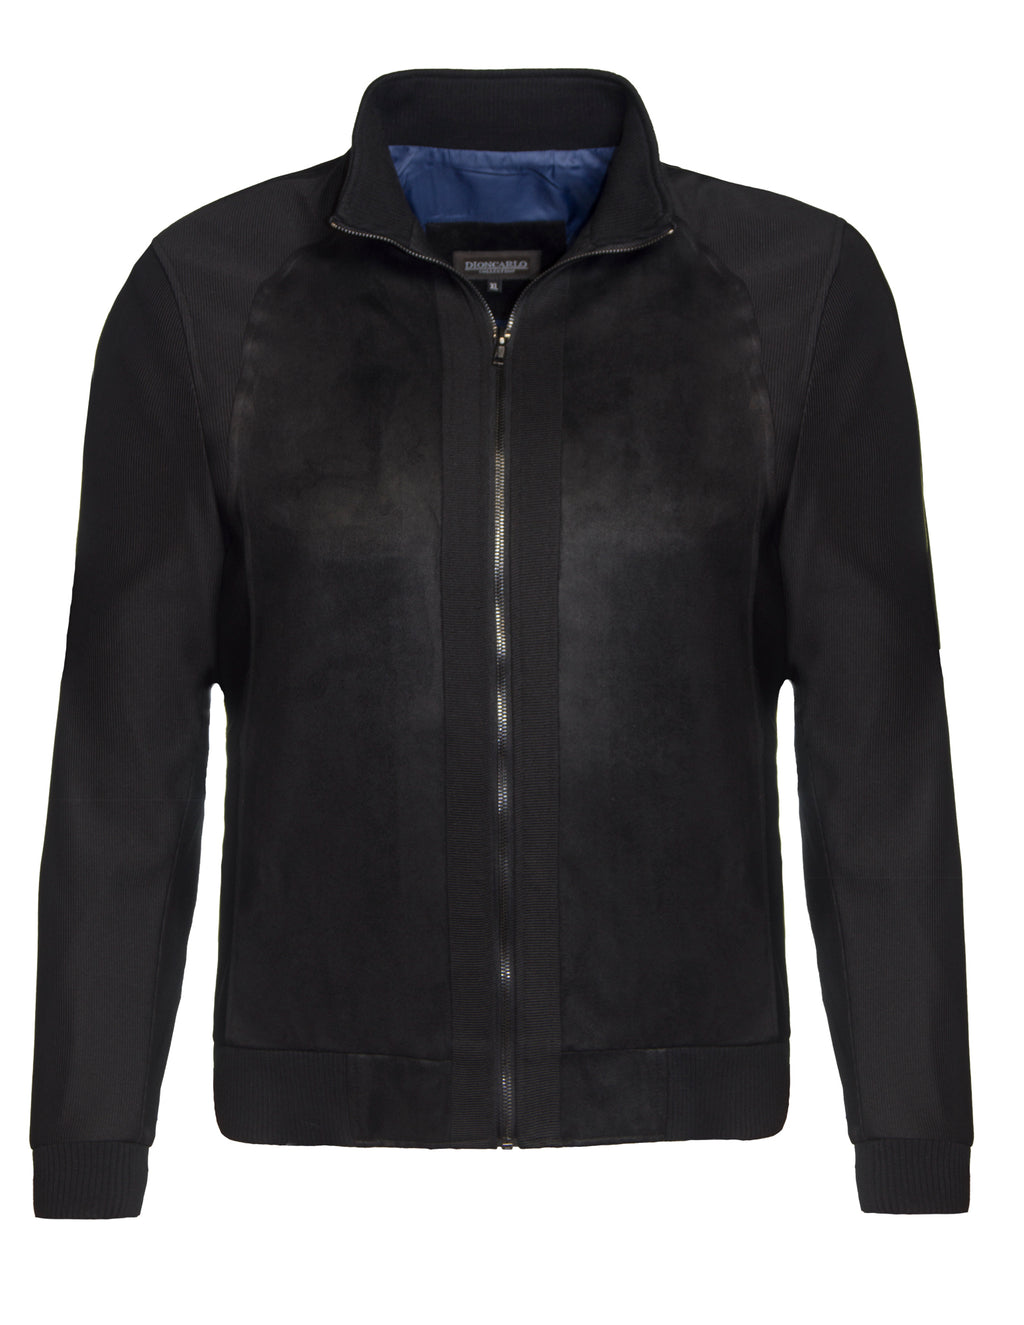 Dion Carlo Black 156 Knitted Sleeve Full Zip Jacket